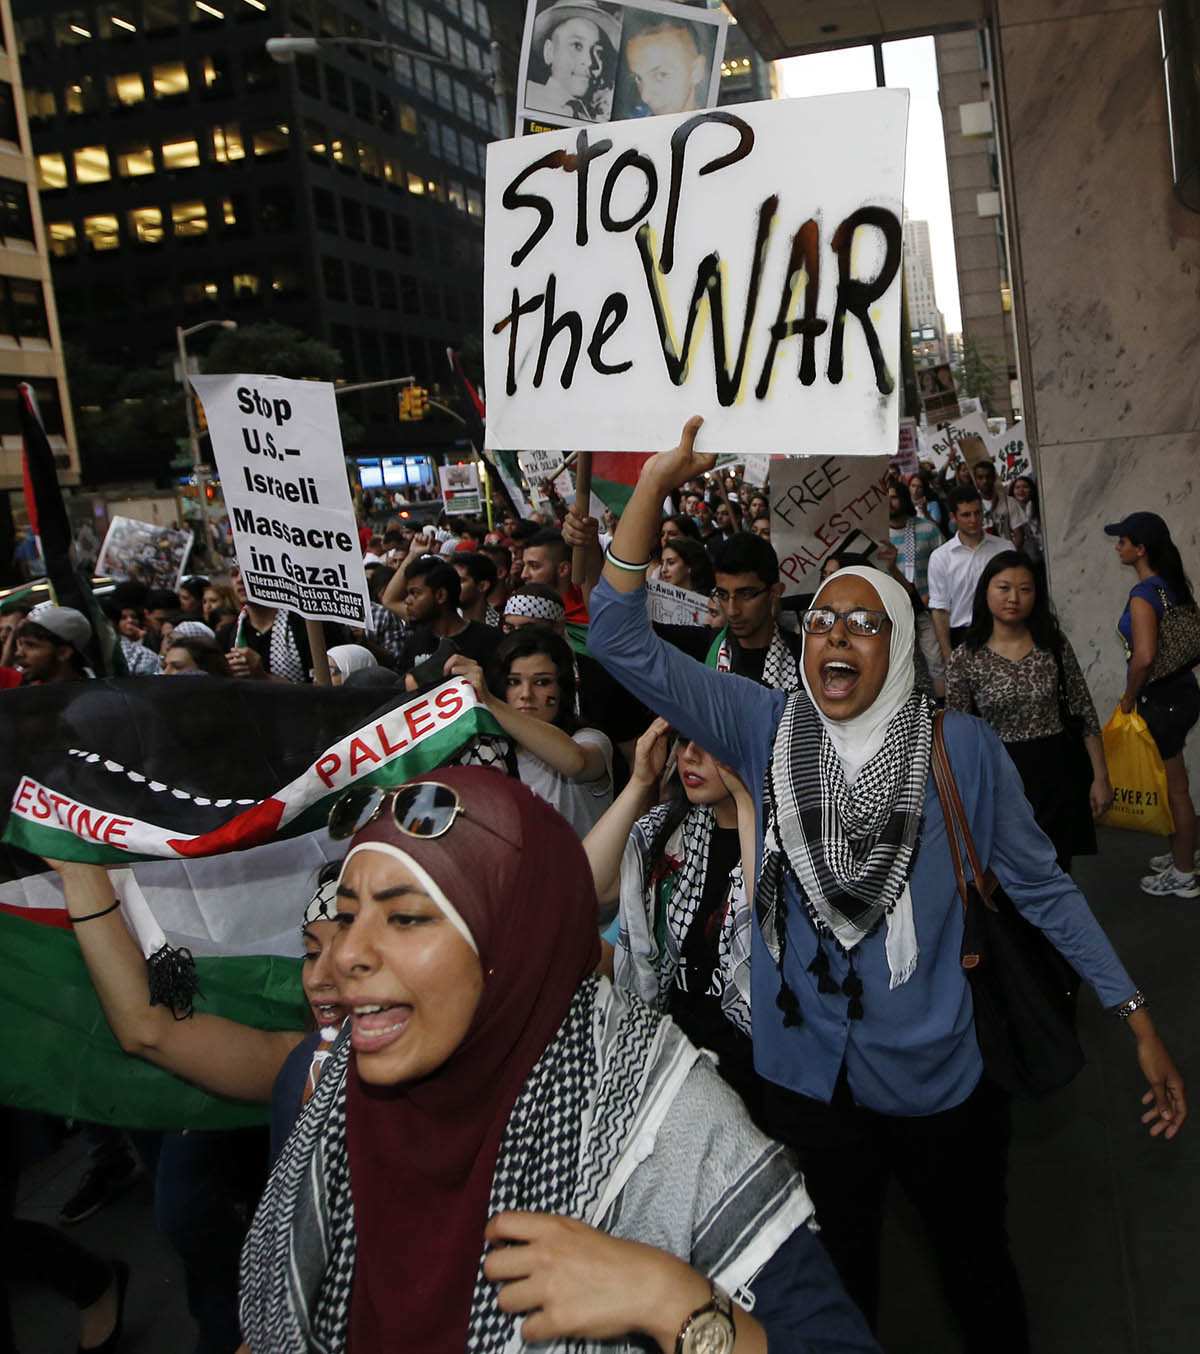 Groups promoting a free Palestine staged an anti-war demonstration in New York, Wednesday, July 9, 2014. — Photo by AP